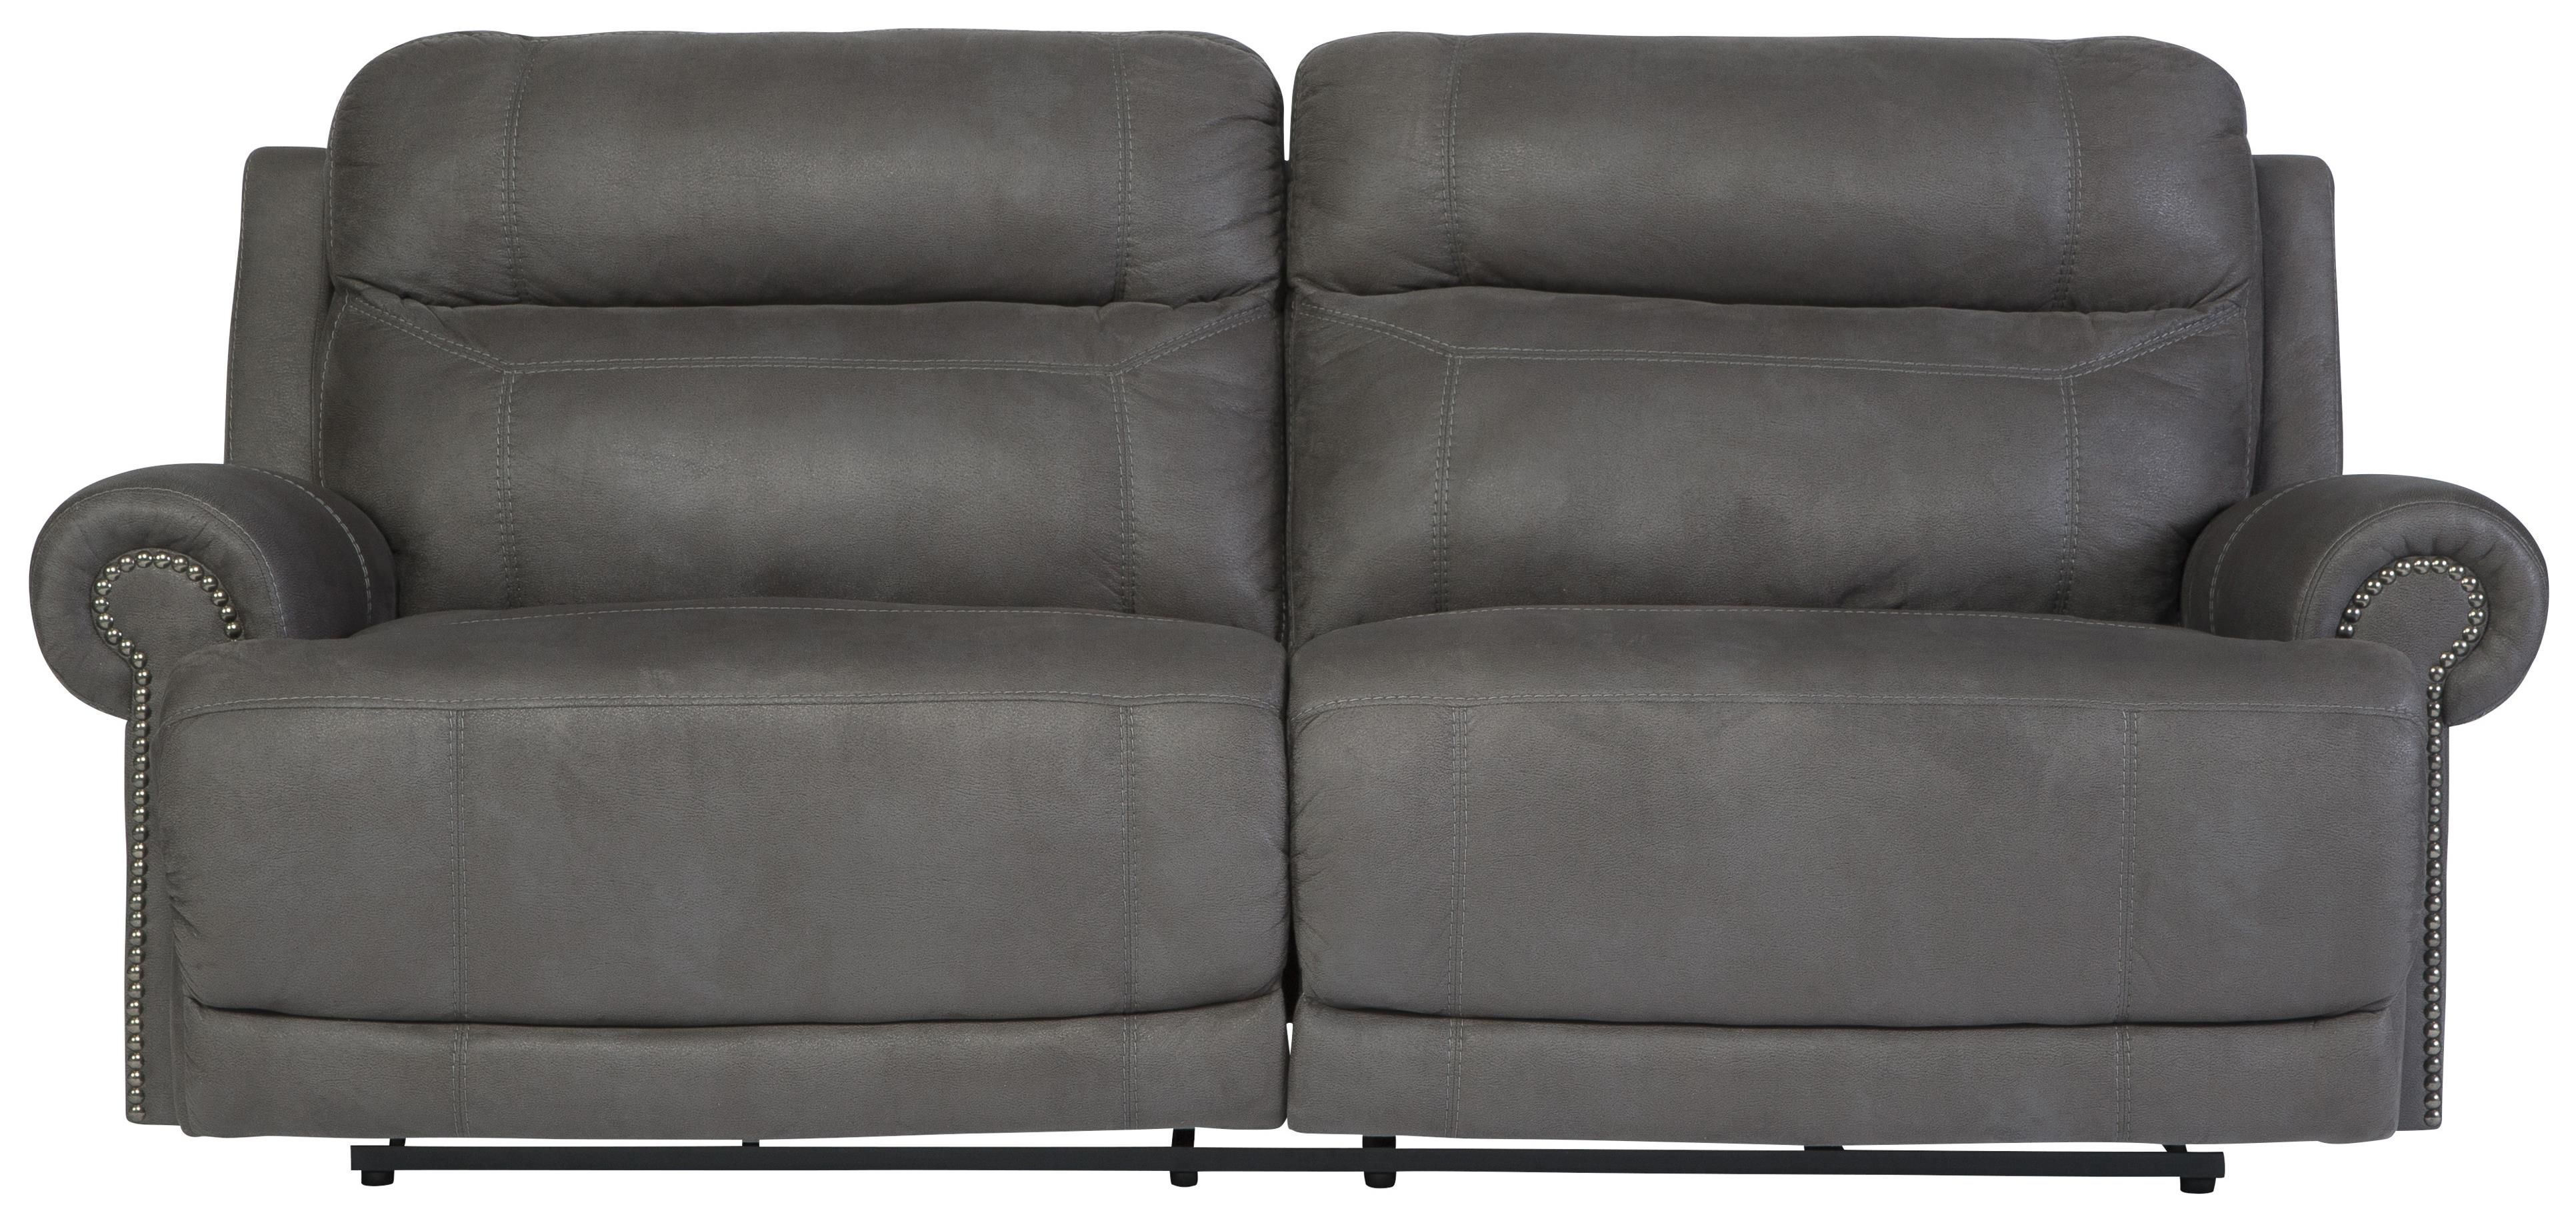 Austere - Gray 2 Seat Reclining Sofa by Ashley (Signature Design) at Johnny Janosik